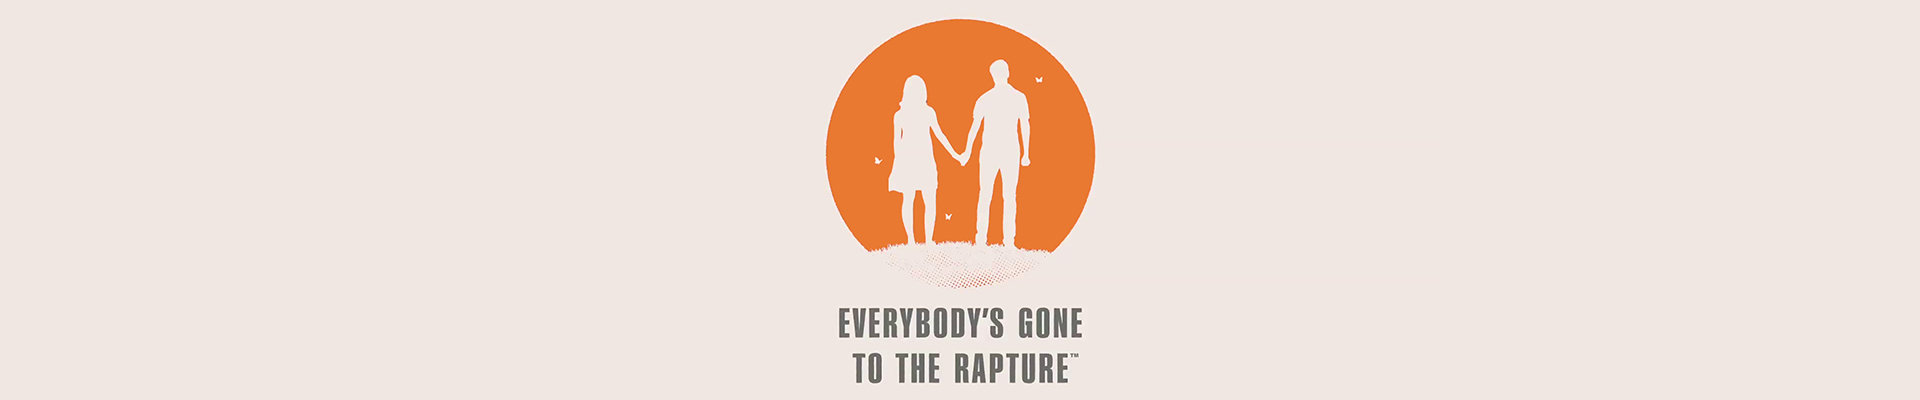 Thoughts on: Everybody's Gone to the Rapture